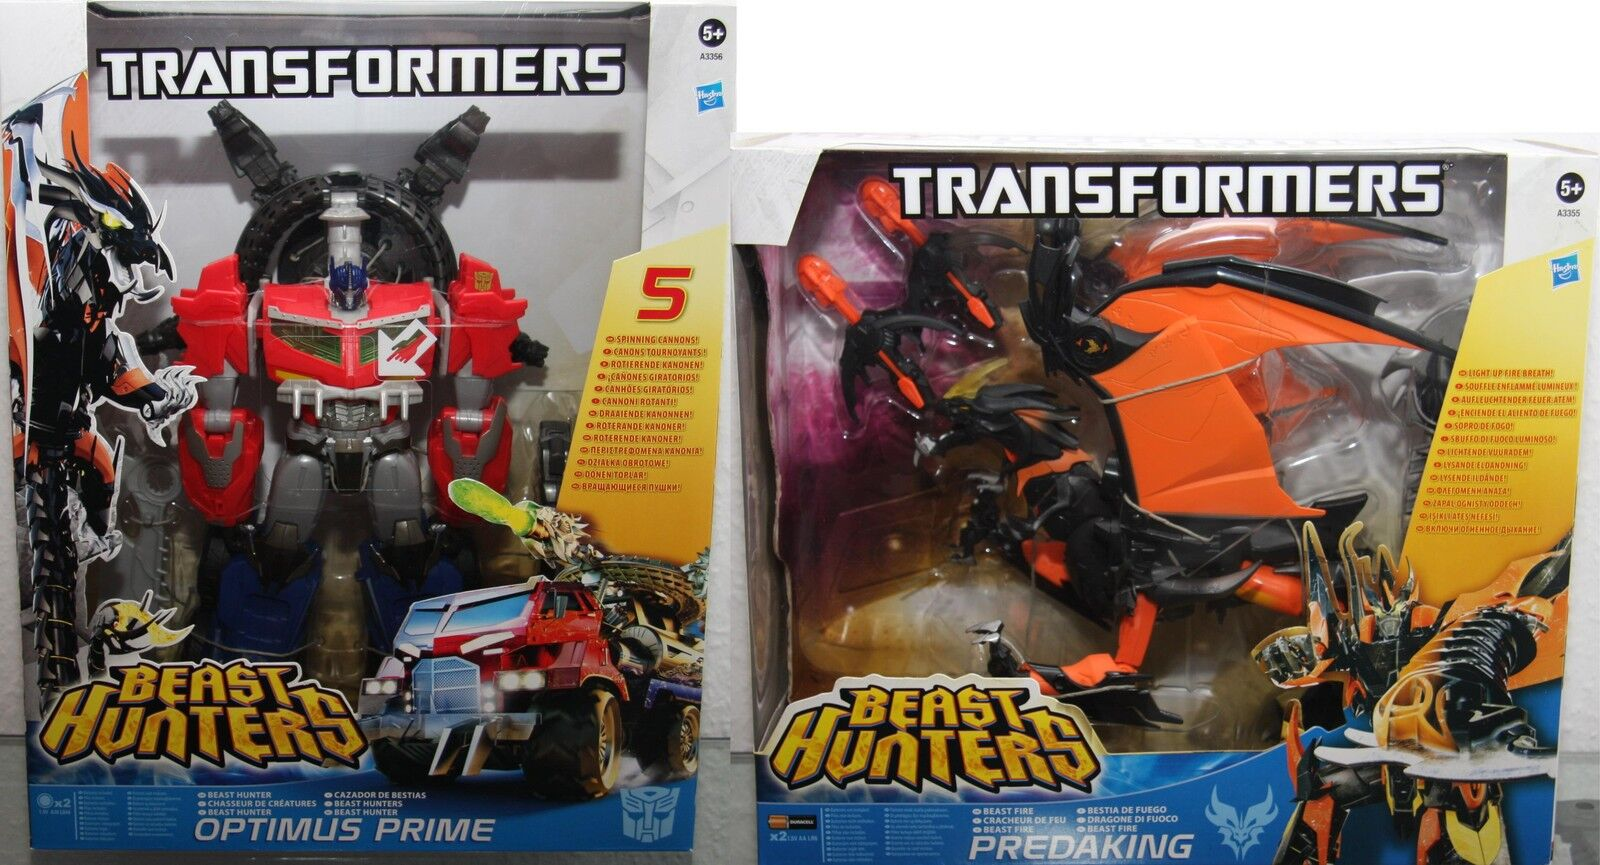 Transformers-Beast HUNTERS- Hasbro -figure-choose  Predaking, Optimus Prime